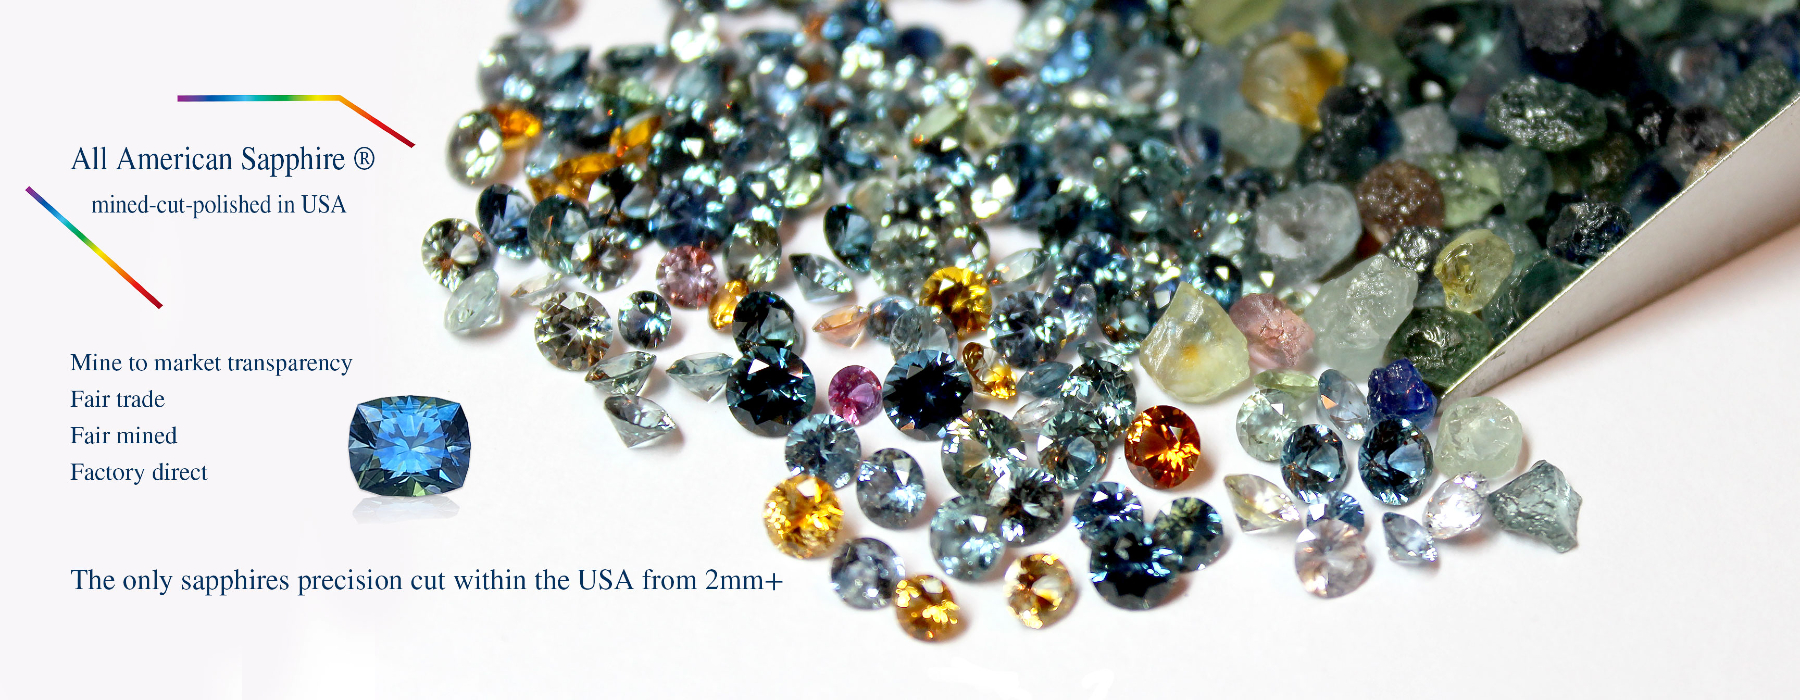 Americut Gems, home of the All American Sapphire®